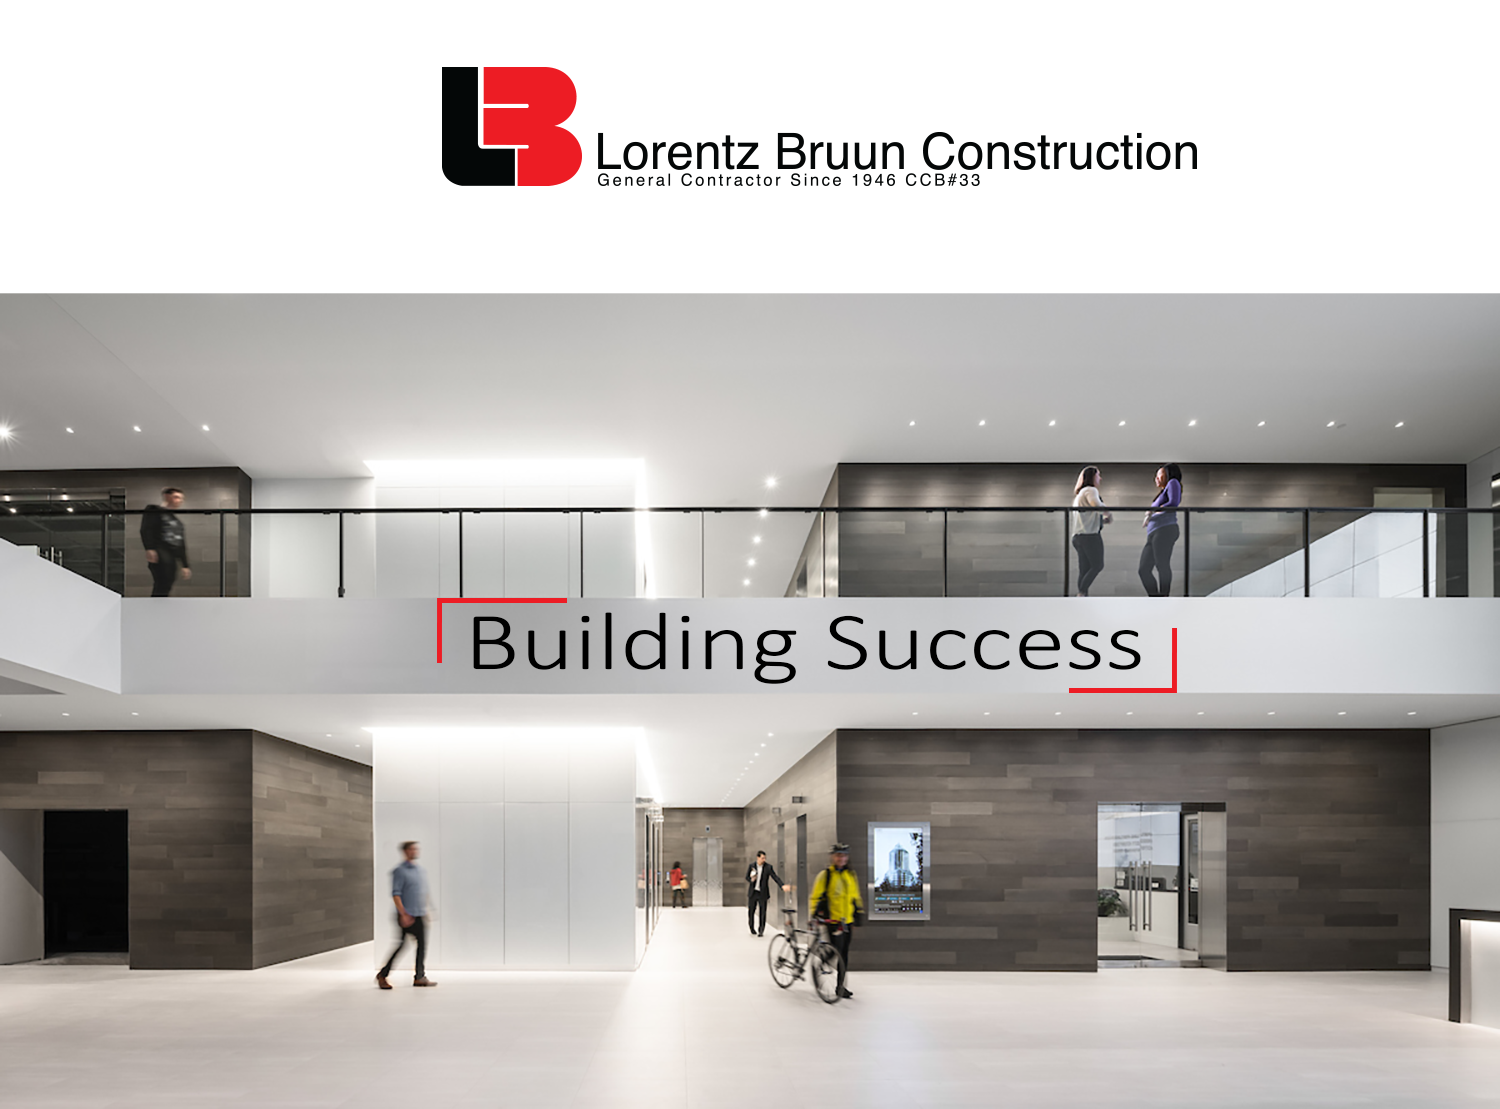 Lorentz Bruun Construction - General Contractor